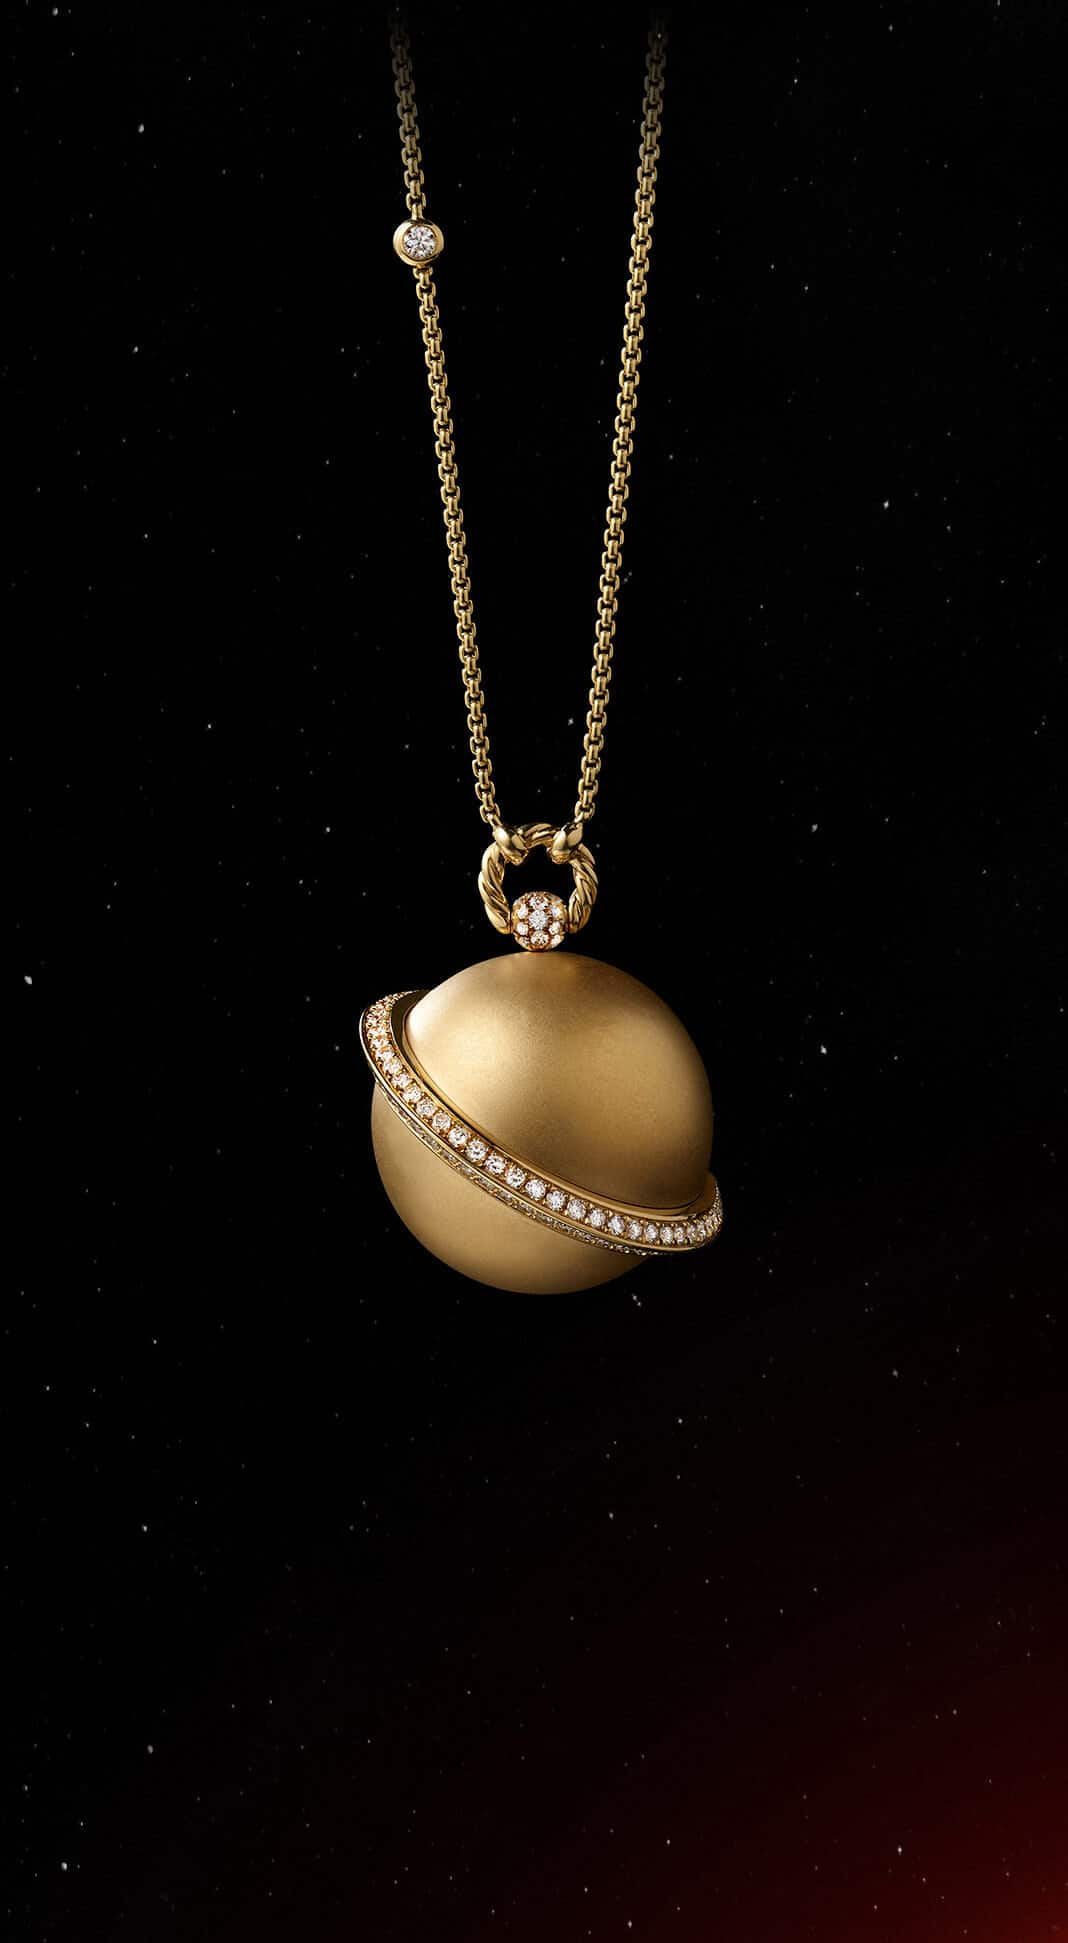 A color photo shows the David Yurman Solari Planet Saturn pendant necklace in front of a starry night sky. The pendant is crafted from 18K yellow gold with white diamonds.